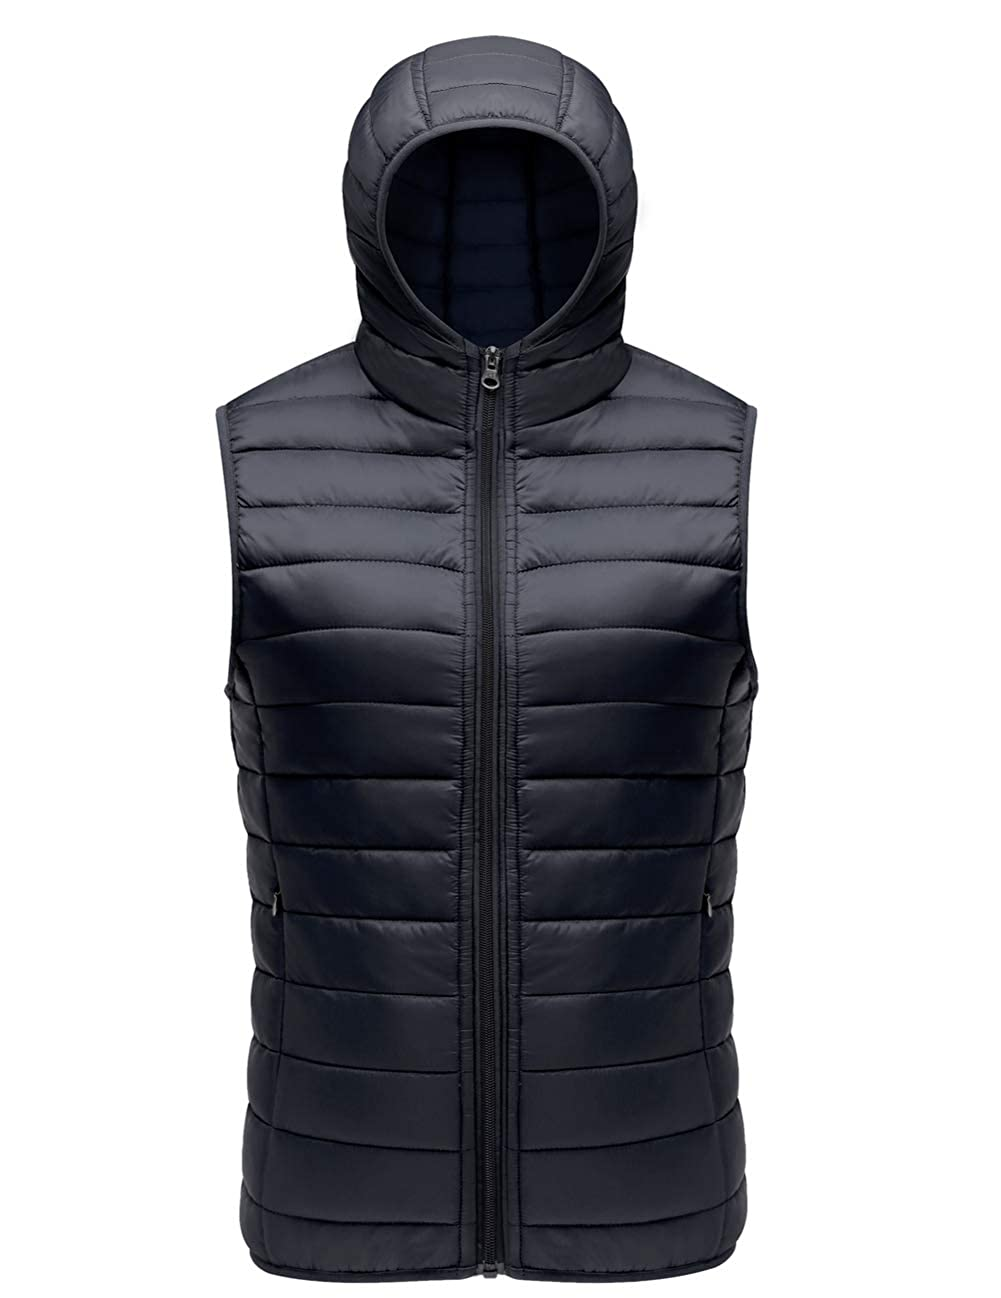 Green Ladies Gilet Size S Making Things Convenient For The People Women's Clothing Clothes, Shoes & Accessories